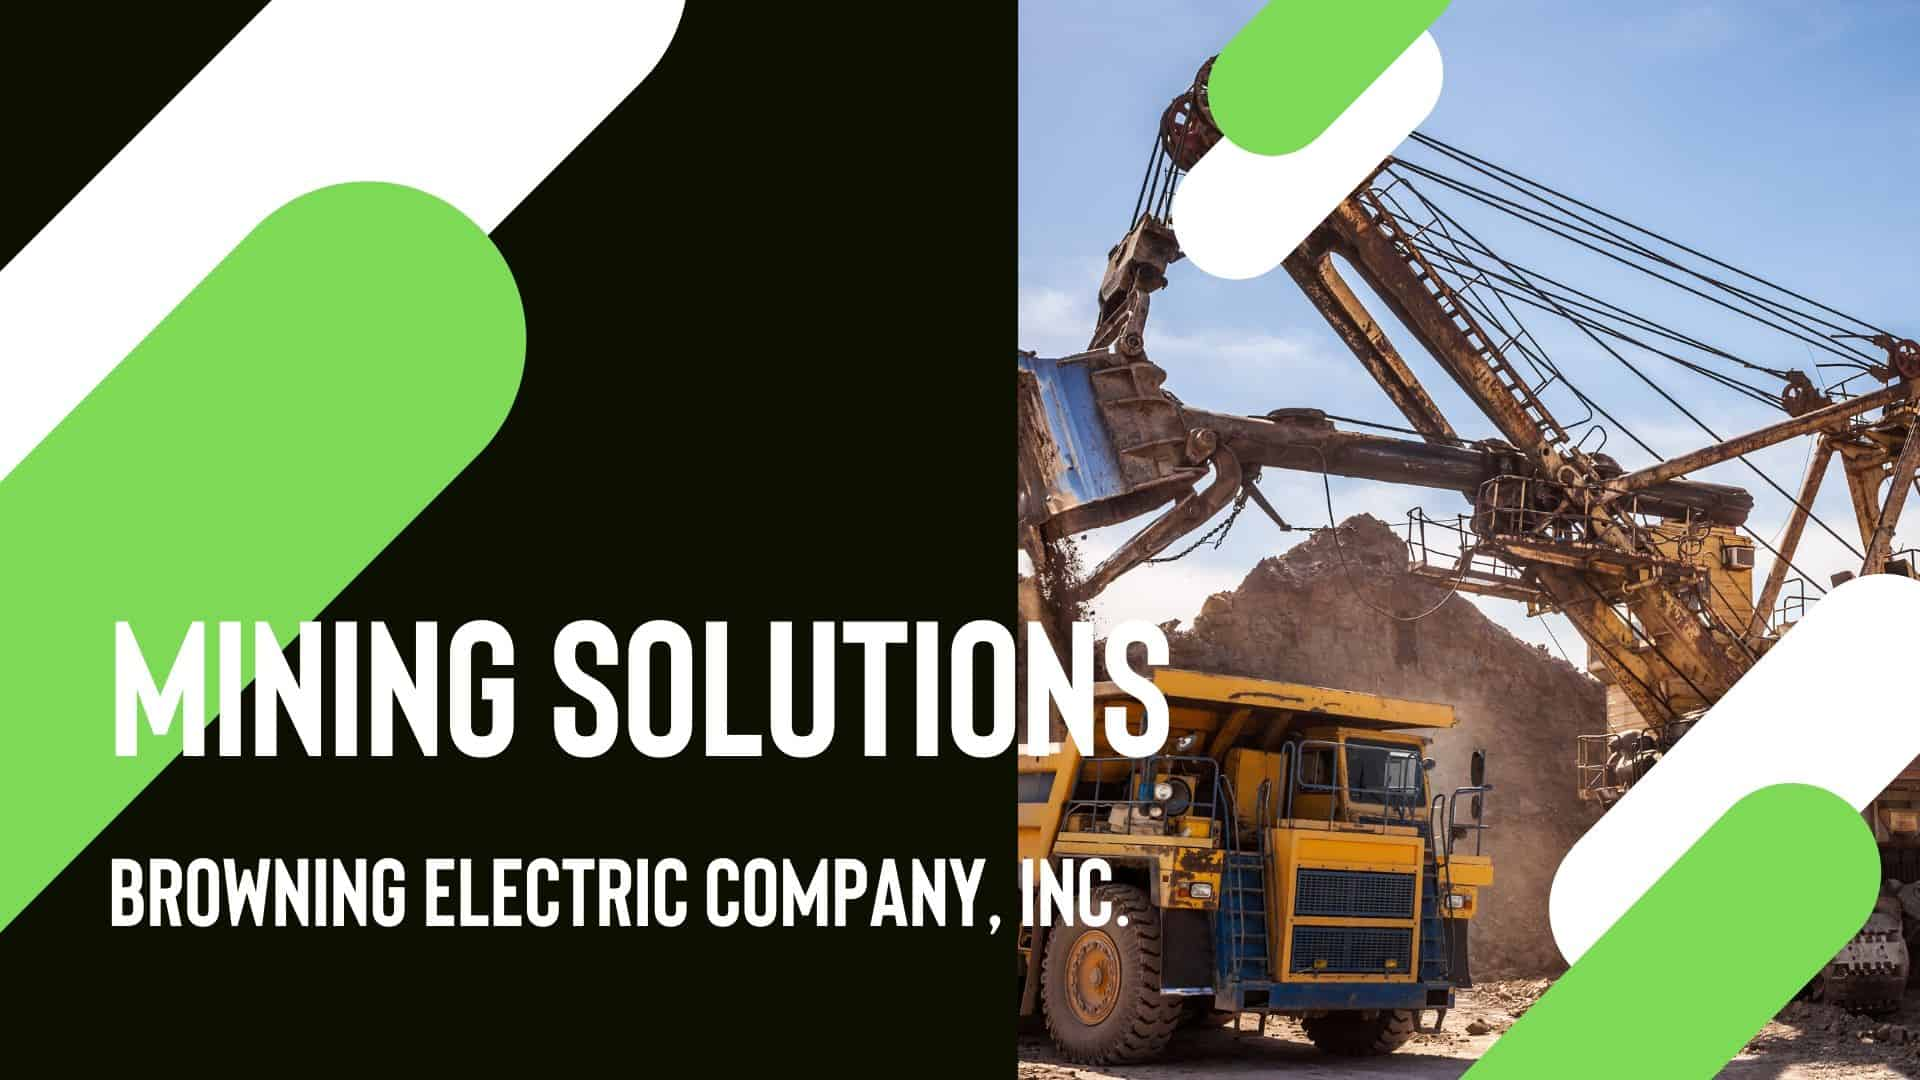 mining electrical services web page design